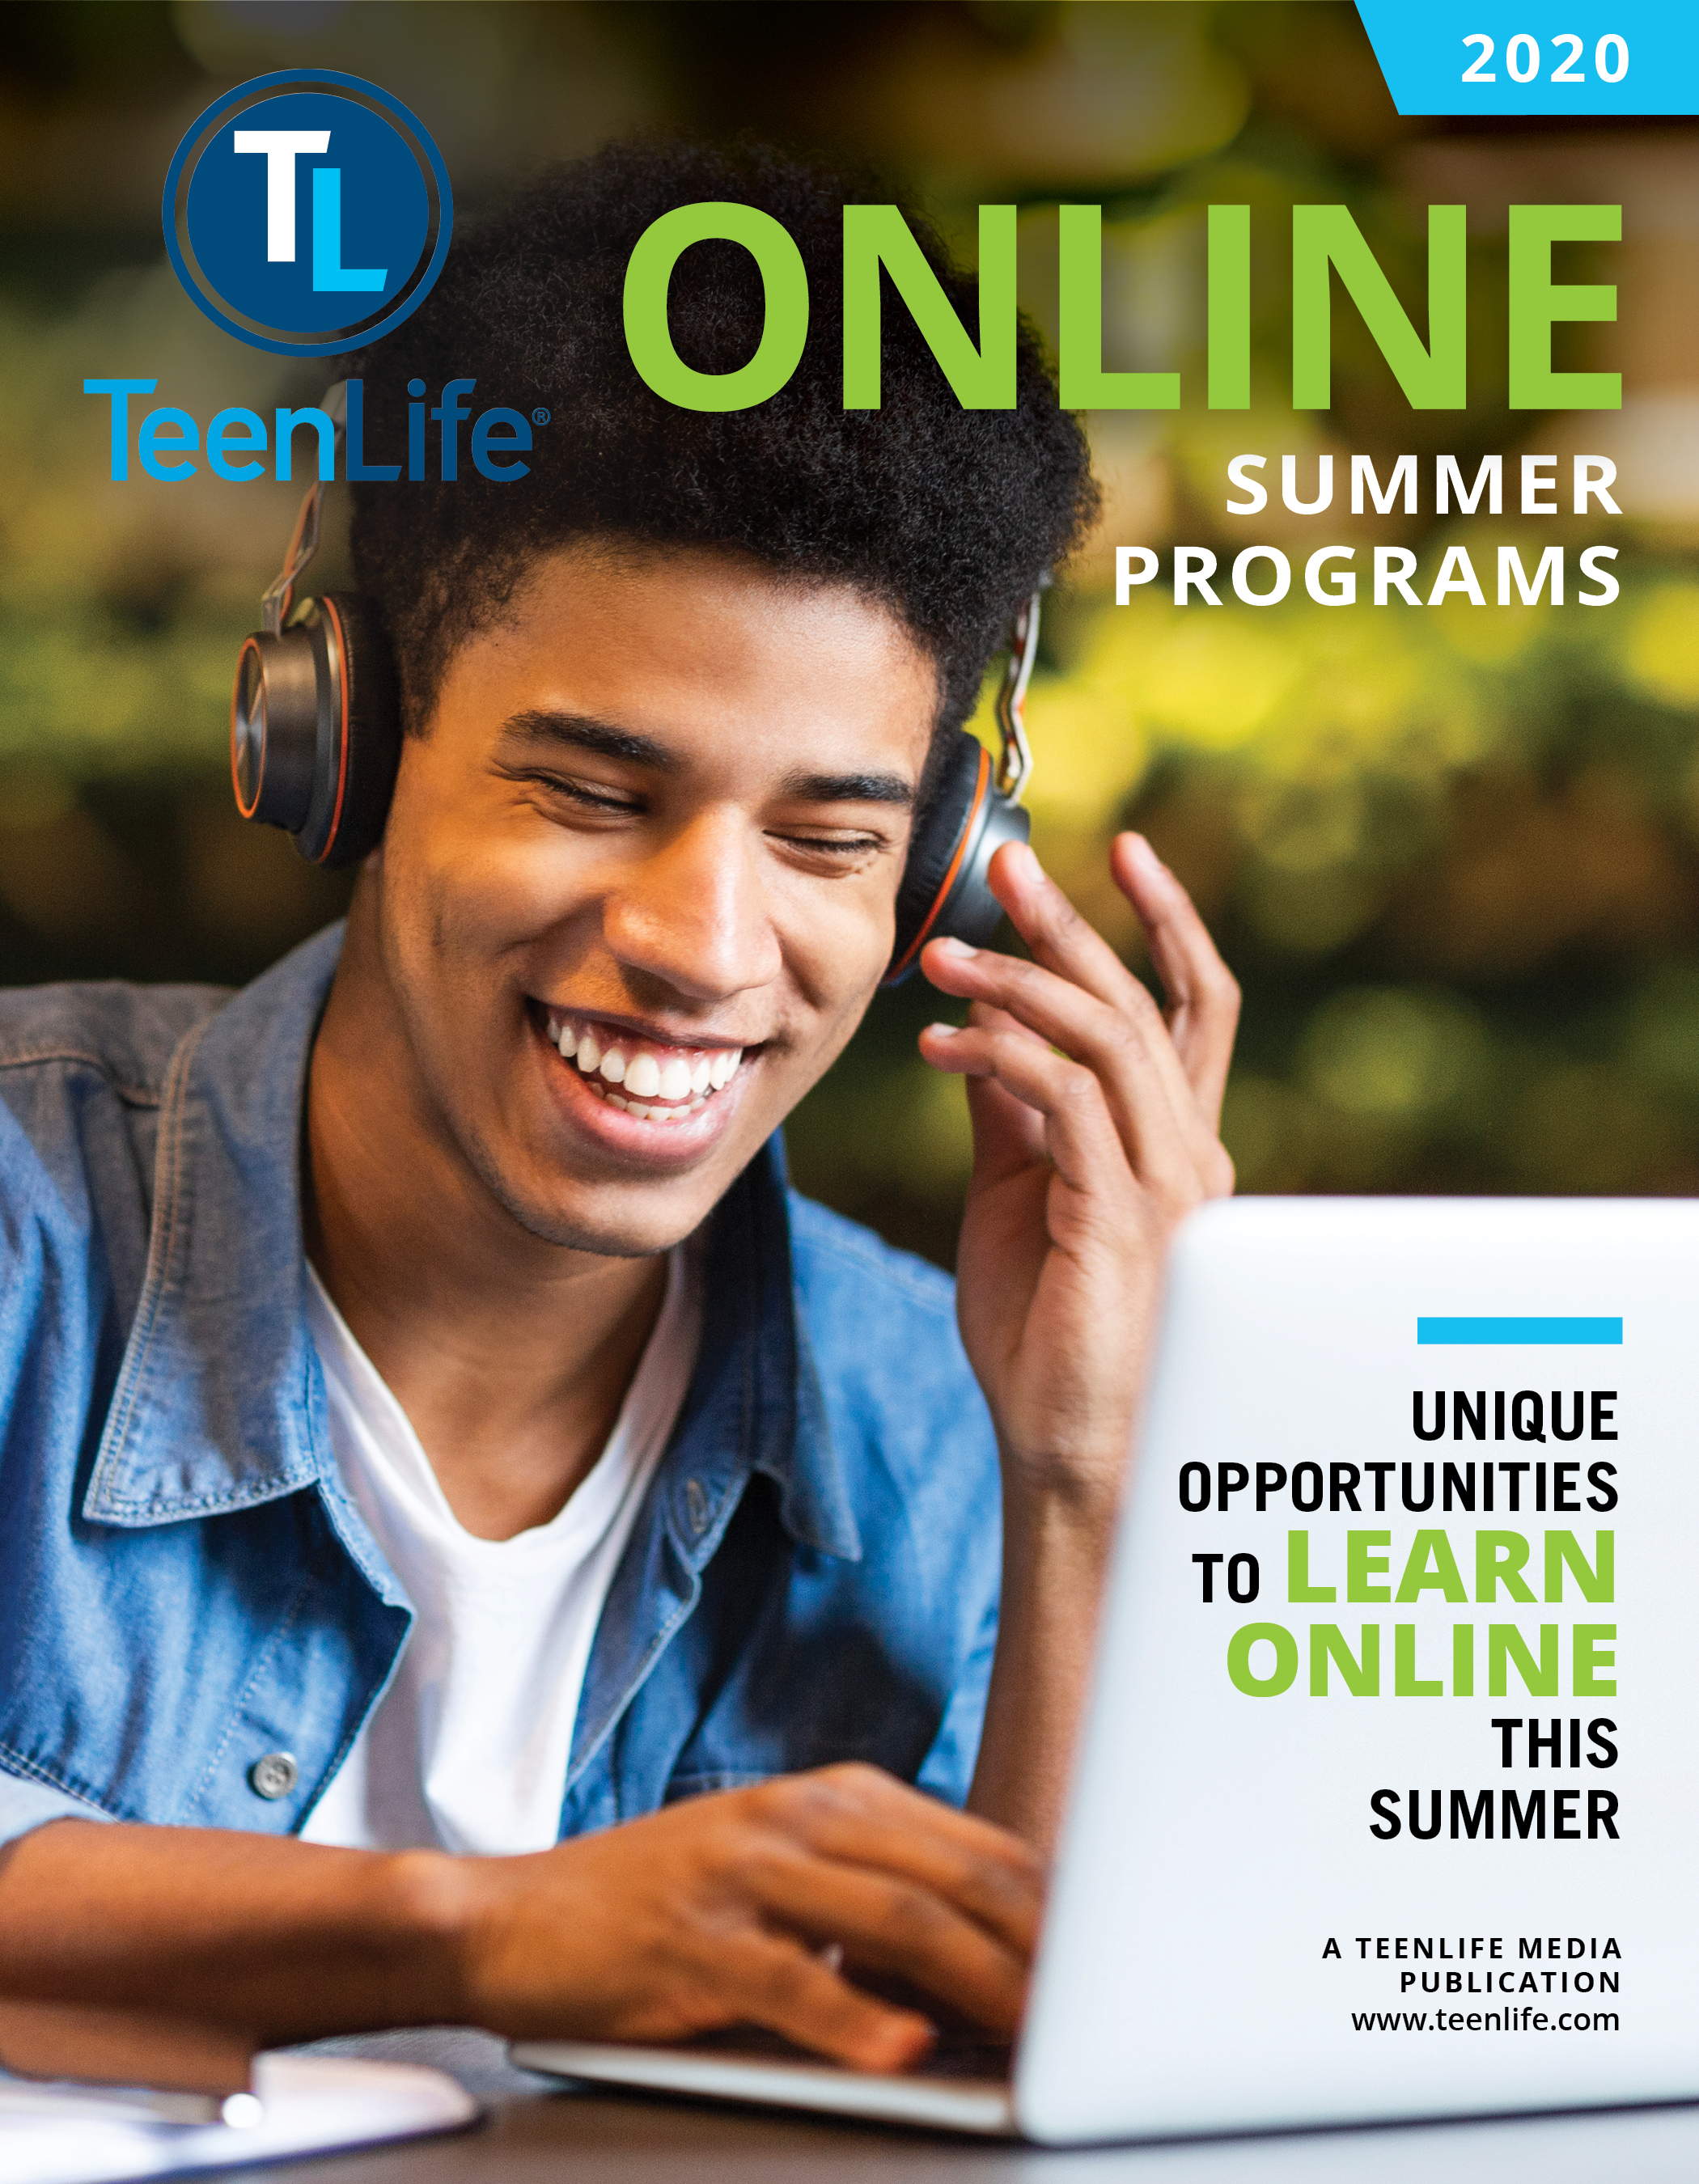 Guide to Online Summer Programs 2020-TeenLife